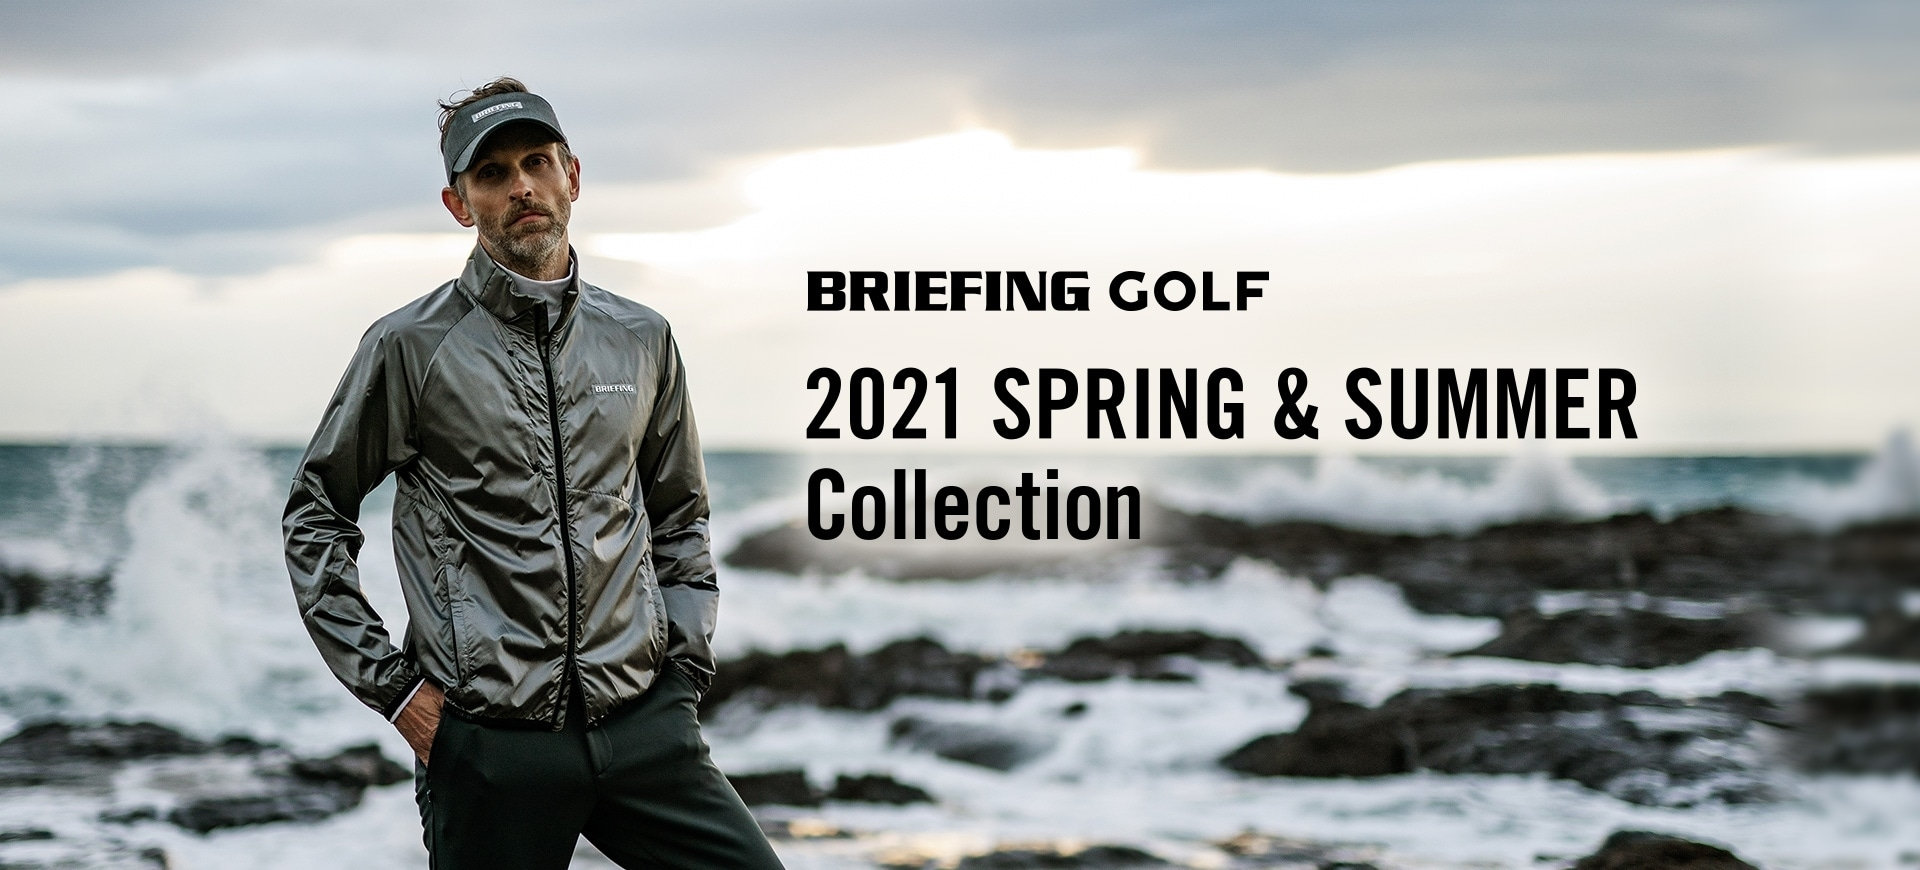 BRIEFING GOLF 2021SS LOOKBOOK